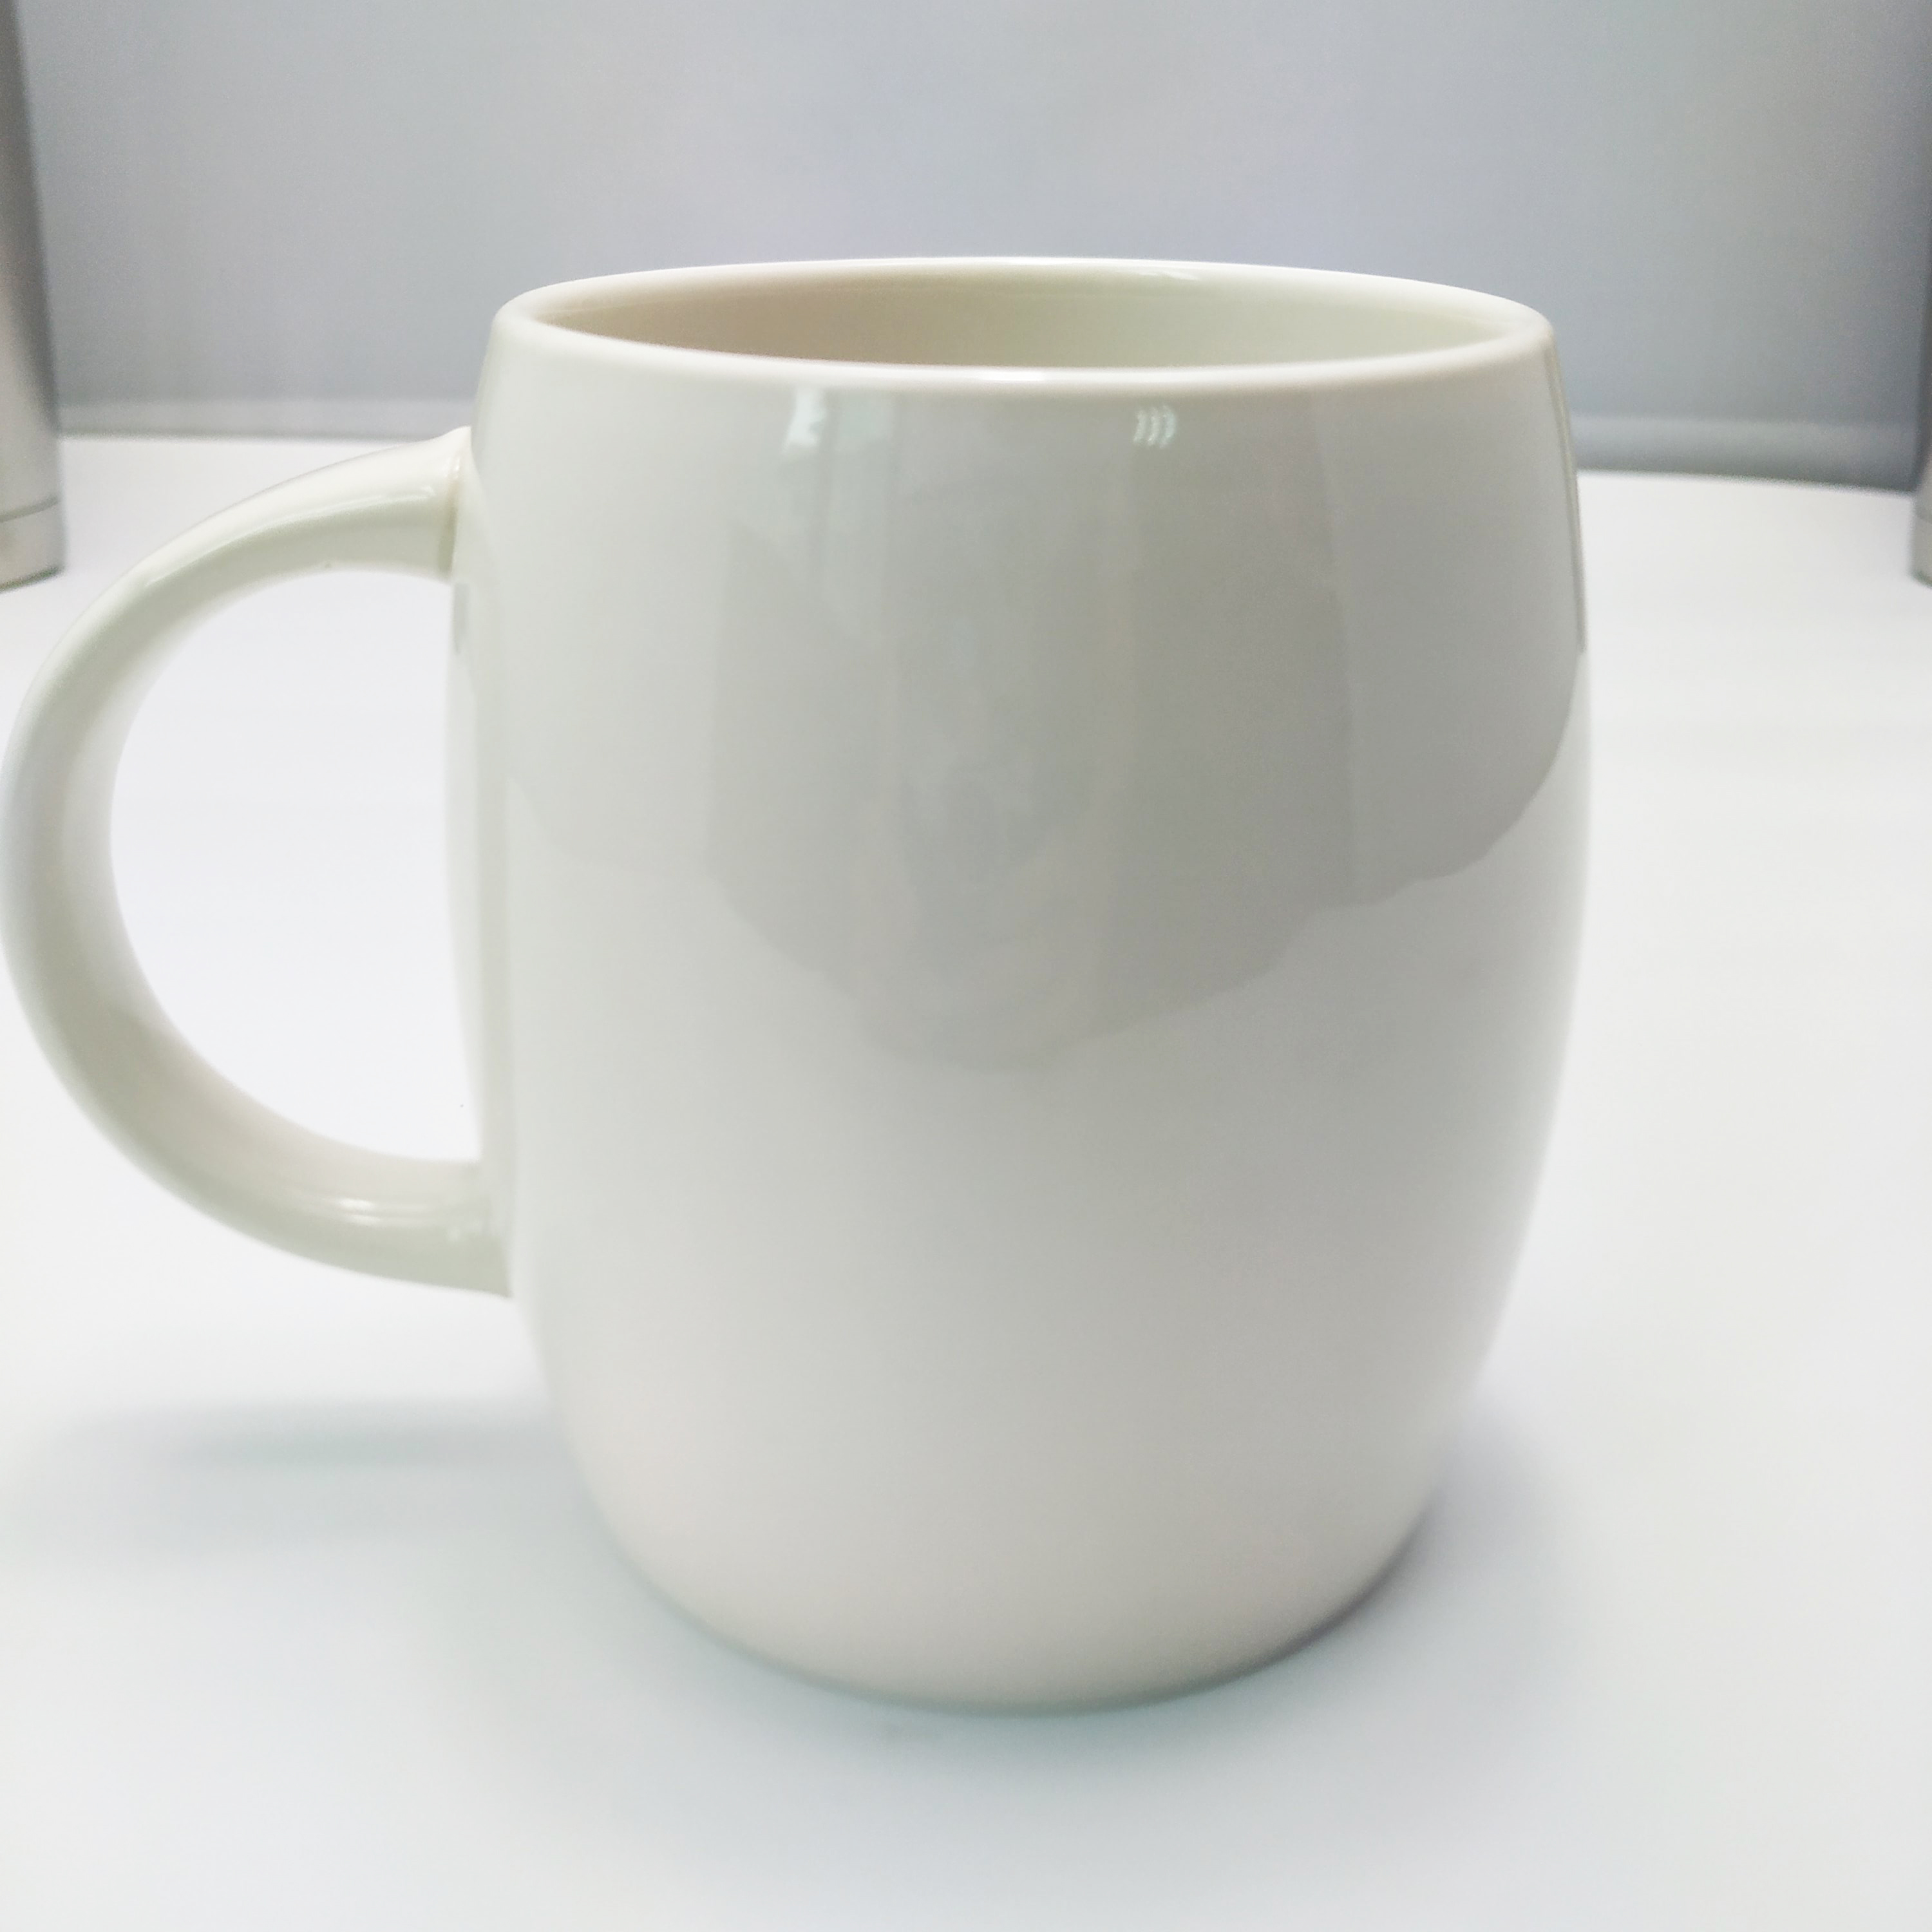 Promotional Gifts White Barrel Coffee Mug Plain High Quality 400ml Porcelain Barrel Shape Mug For Coffee Shop